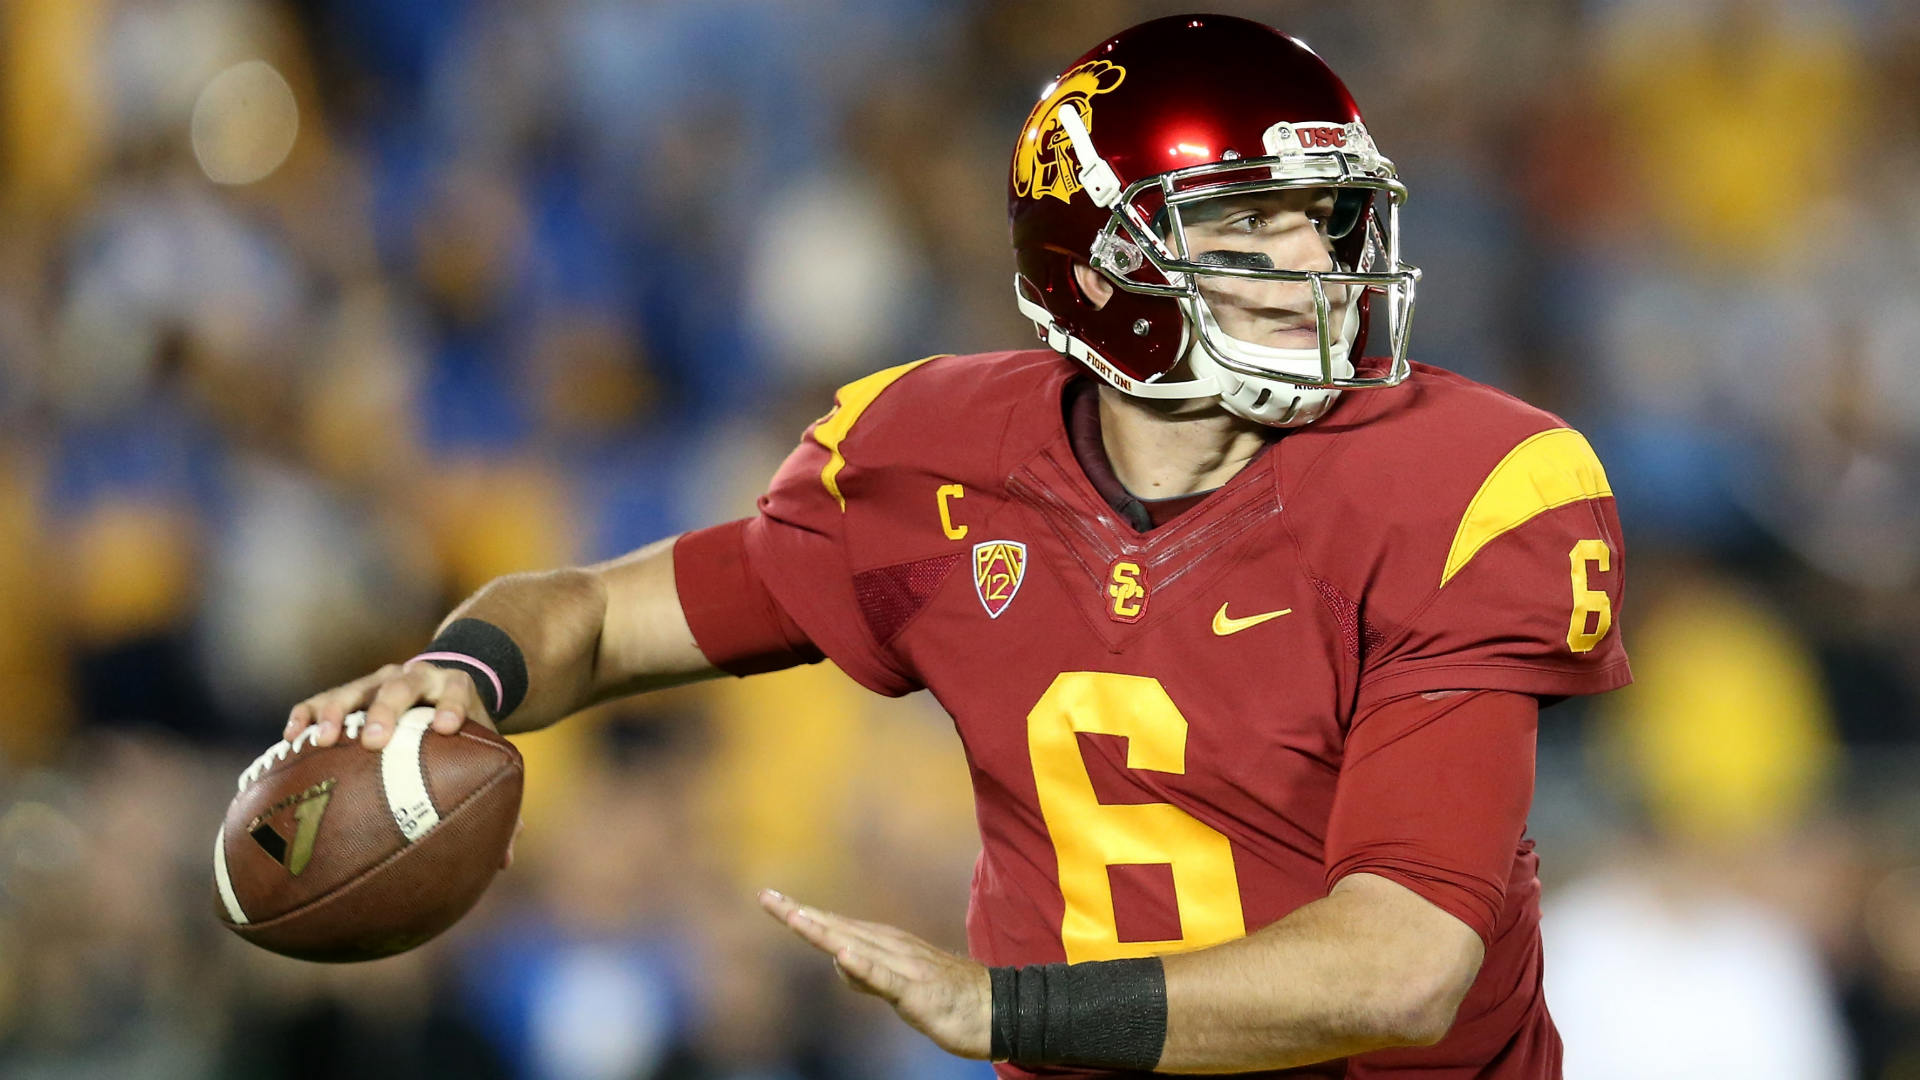 College football conference odds posted in Vegas – SEC, Pac 12, ACC all priced competitively